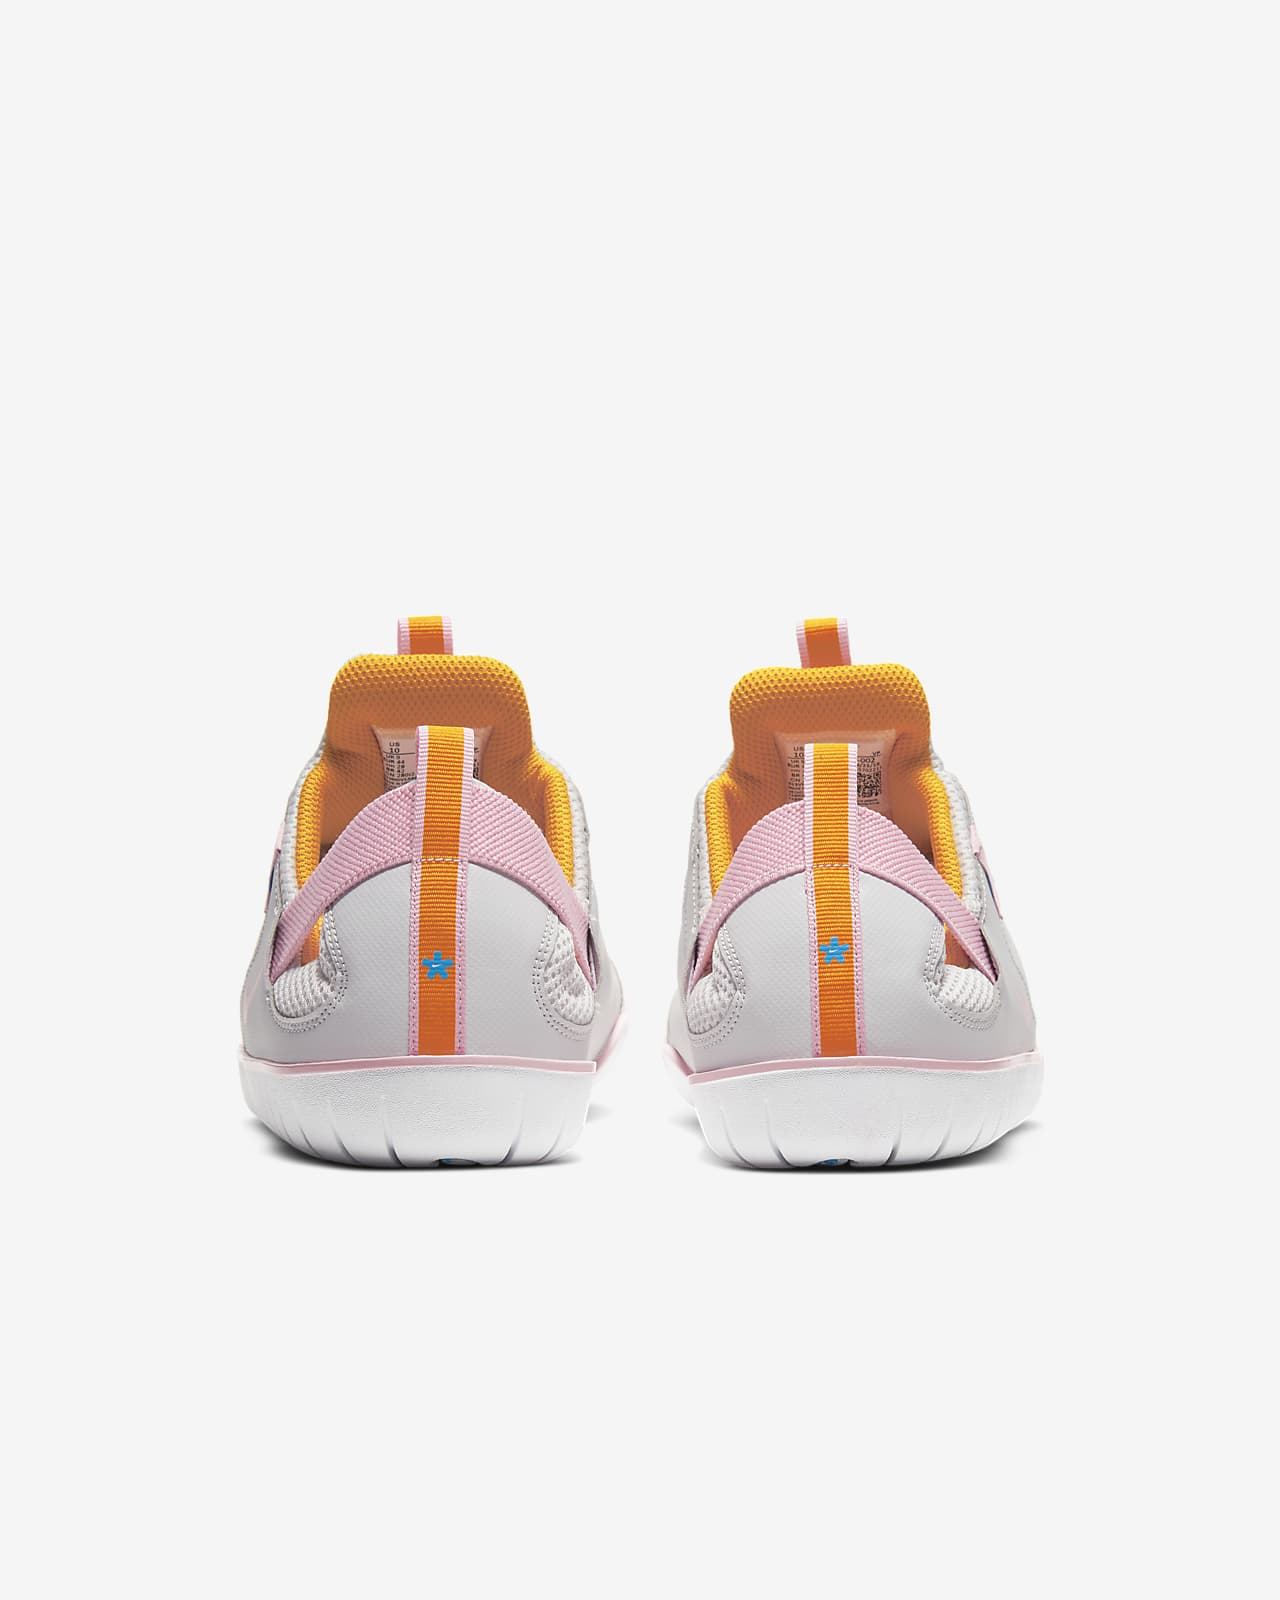 Nike Air Zoom Pulse Shoes